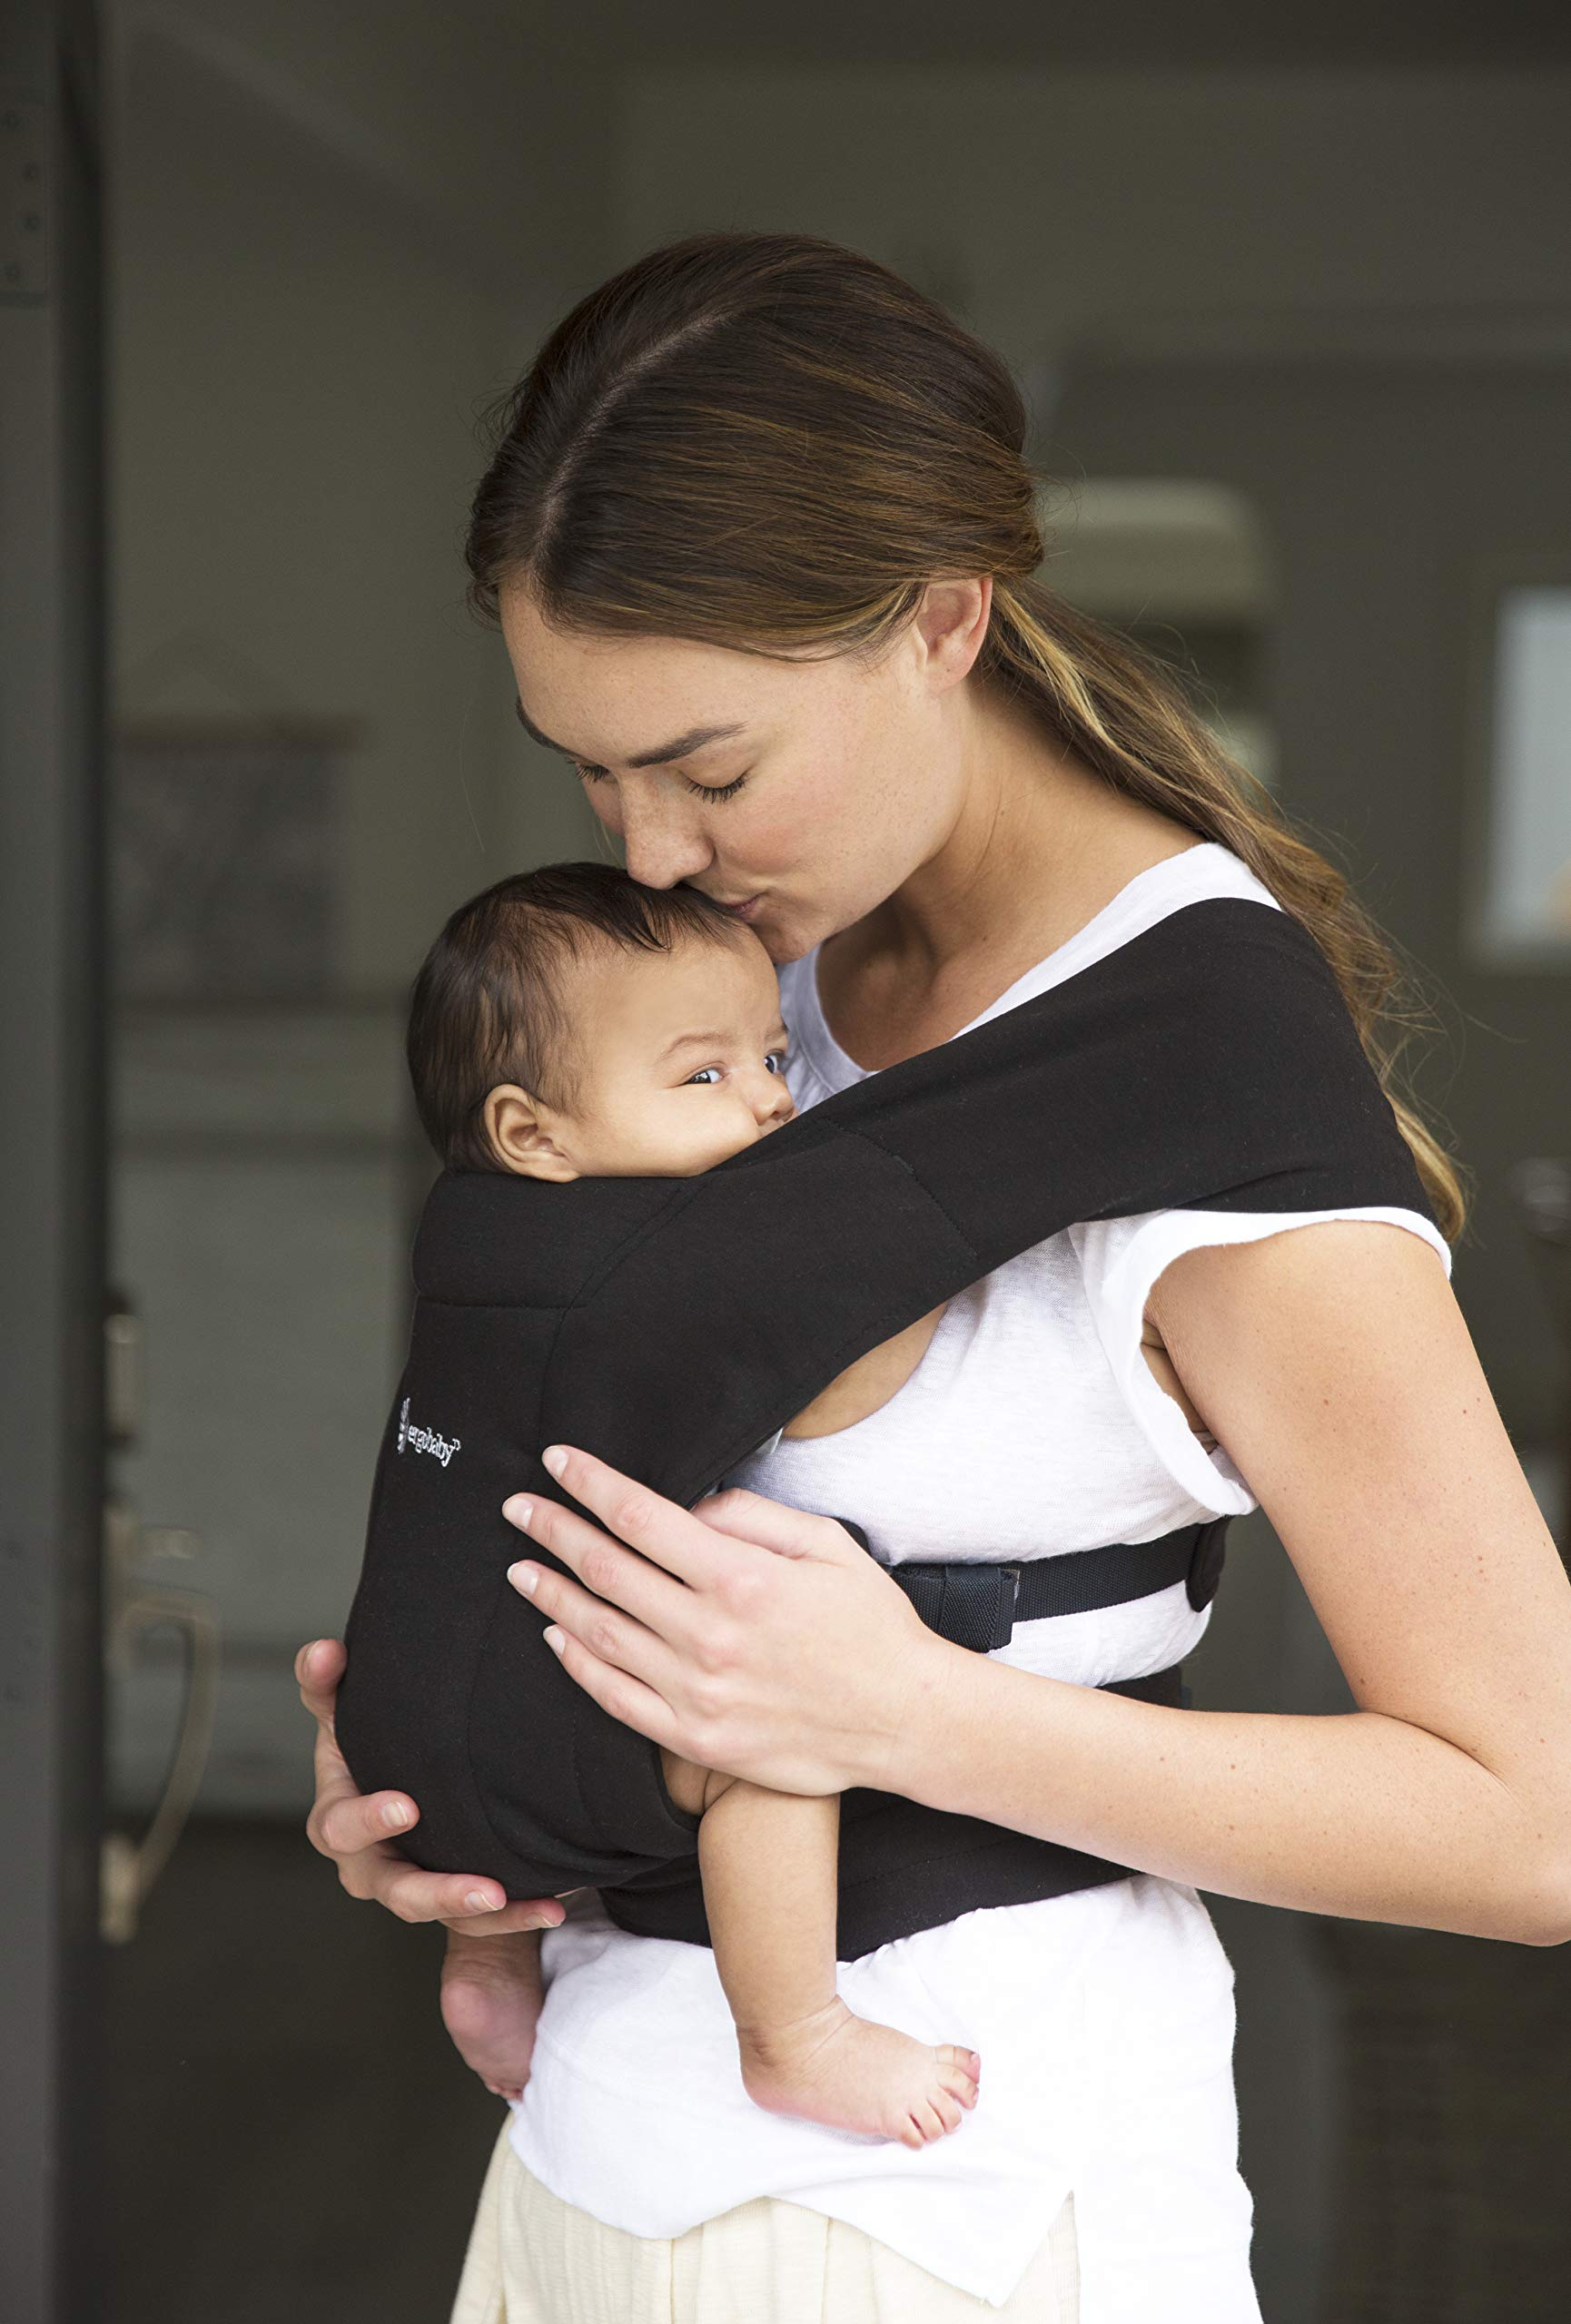 """ErgobabyEmbraceBaby Carrier for Newborns from Birth with Head Support, Extra Soft and Ergonomic (Pure Black) Ergobaby ERGONOMIC BABY CARRIER FROM BIRTH - Carry your newborn baby (3.2 - 11.3kg) snuggled close to you. The baby carrier supports the ergonomic frog-leg position (""""M"""" shape position) of the baby. NEW - The Ergobaby Embrace 2-position Carrier has been specially developed for newborns and babies. A baby carry system for quick and easy use. ULTRA-LIGHT & SUPER SOFT - Less material against the child and open-sided to allow good air circulation. Made from super soft jersey fabric, Oeko-Tex100 certified. Lightweight carrier (approx. 480g). 3"""